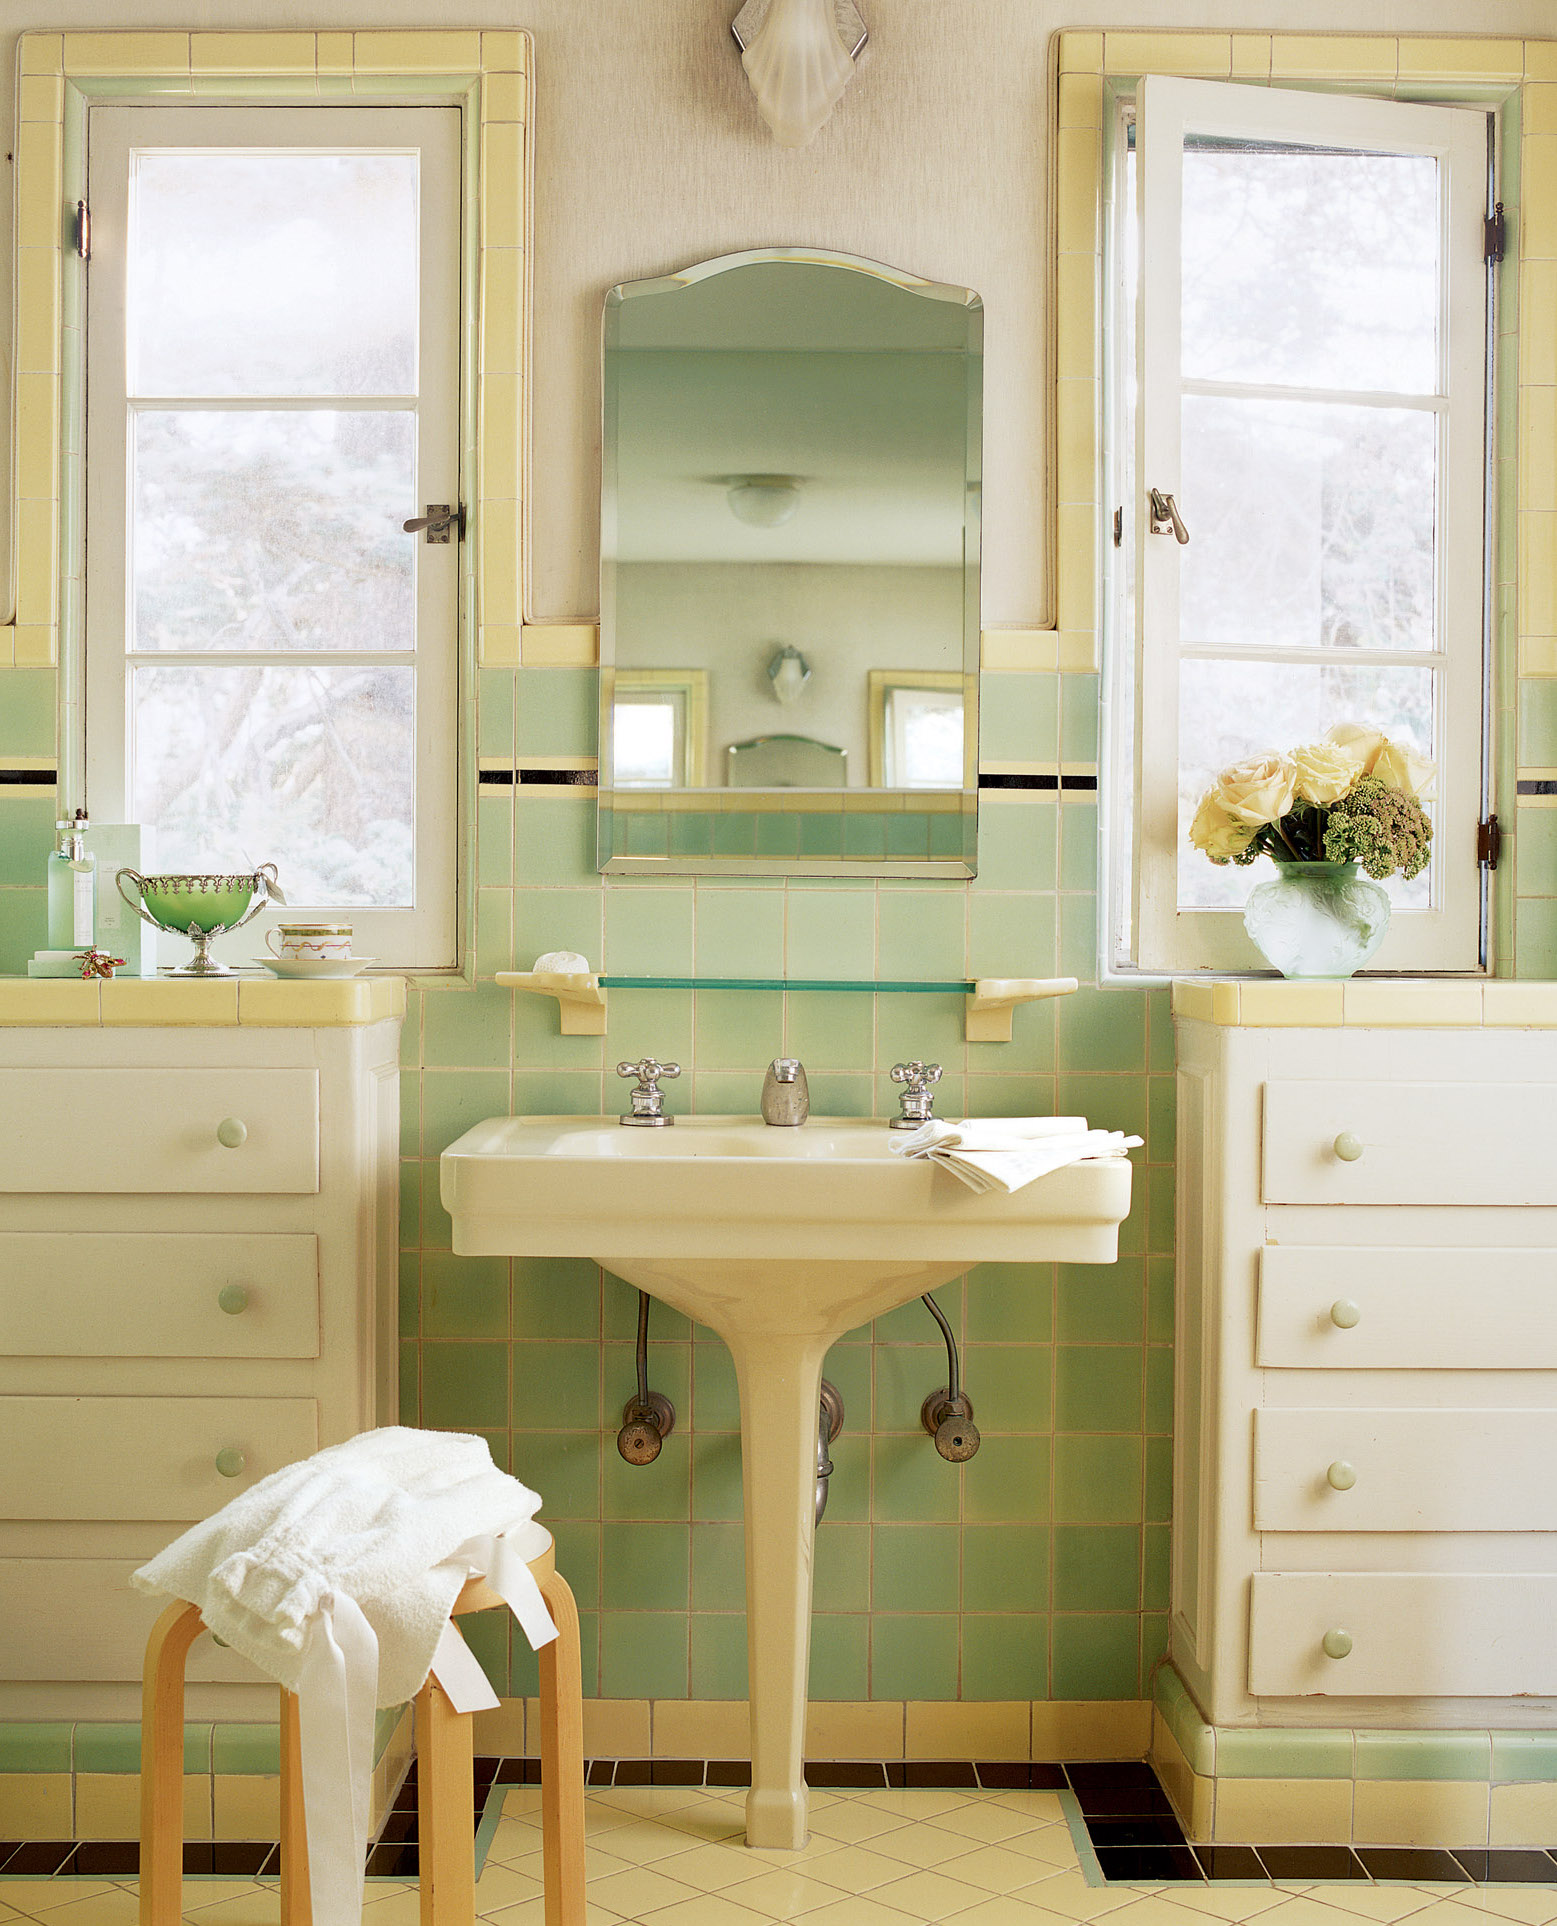 1930s green and yellow bathroom